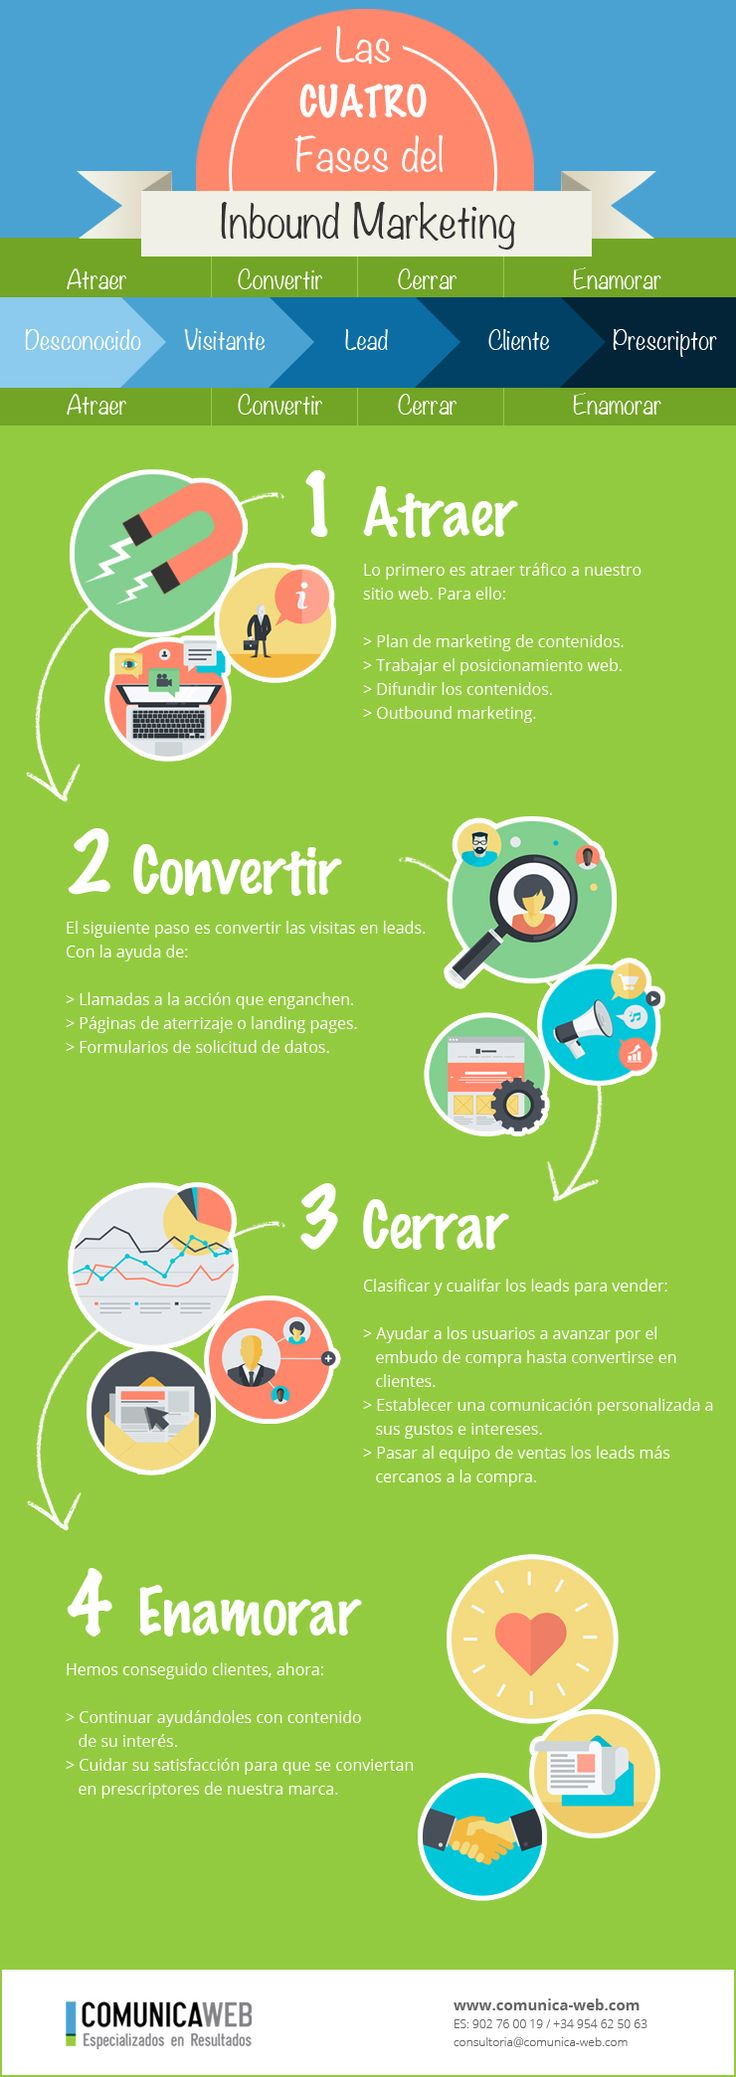 Las cuatro fases del Inbound Marketing. Infografía en español. #CommunityManager